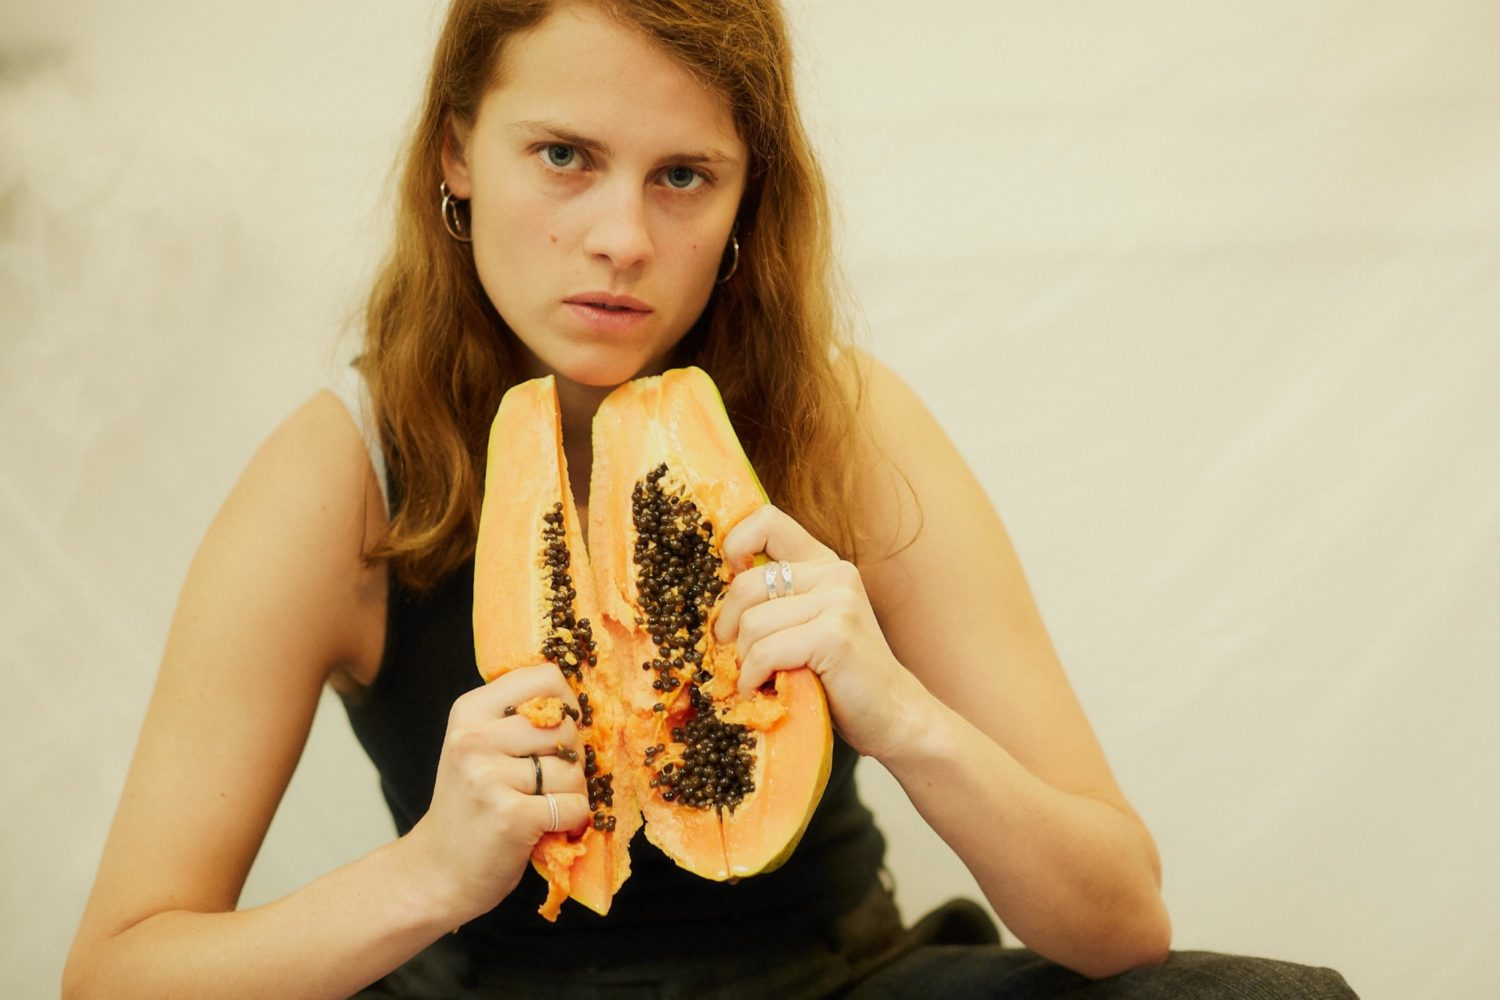 The Human Touch: Marika Hackman goes full frontal for DIY's July cover